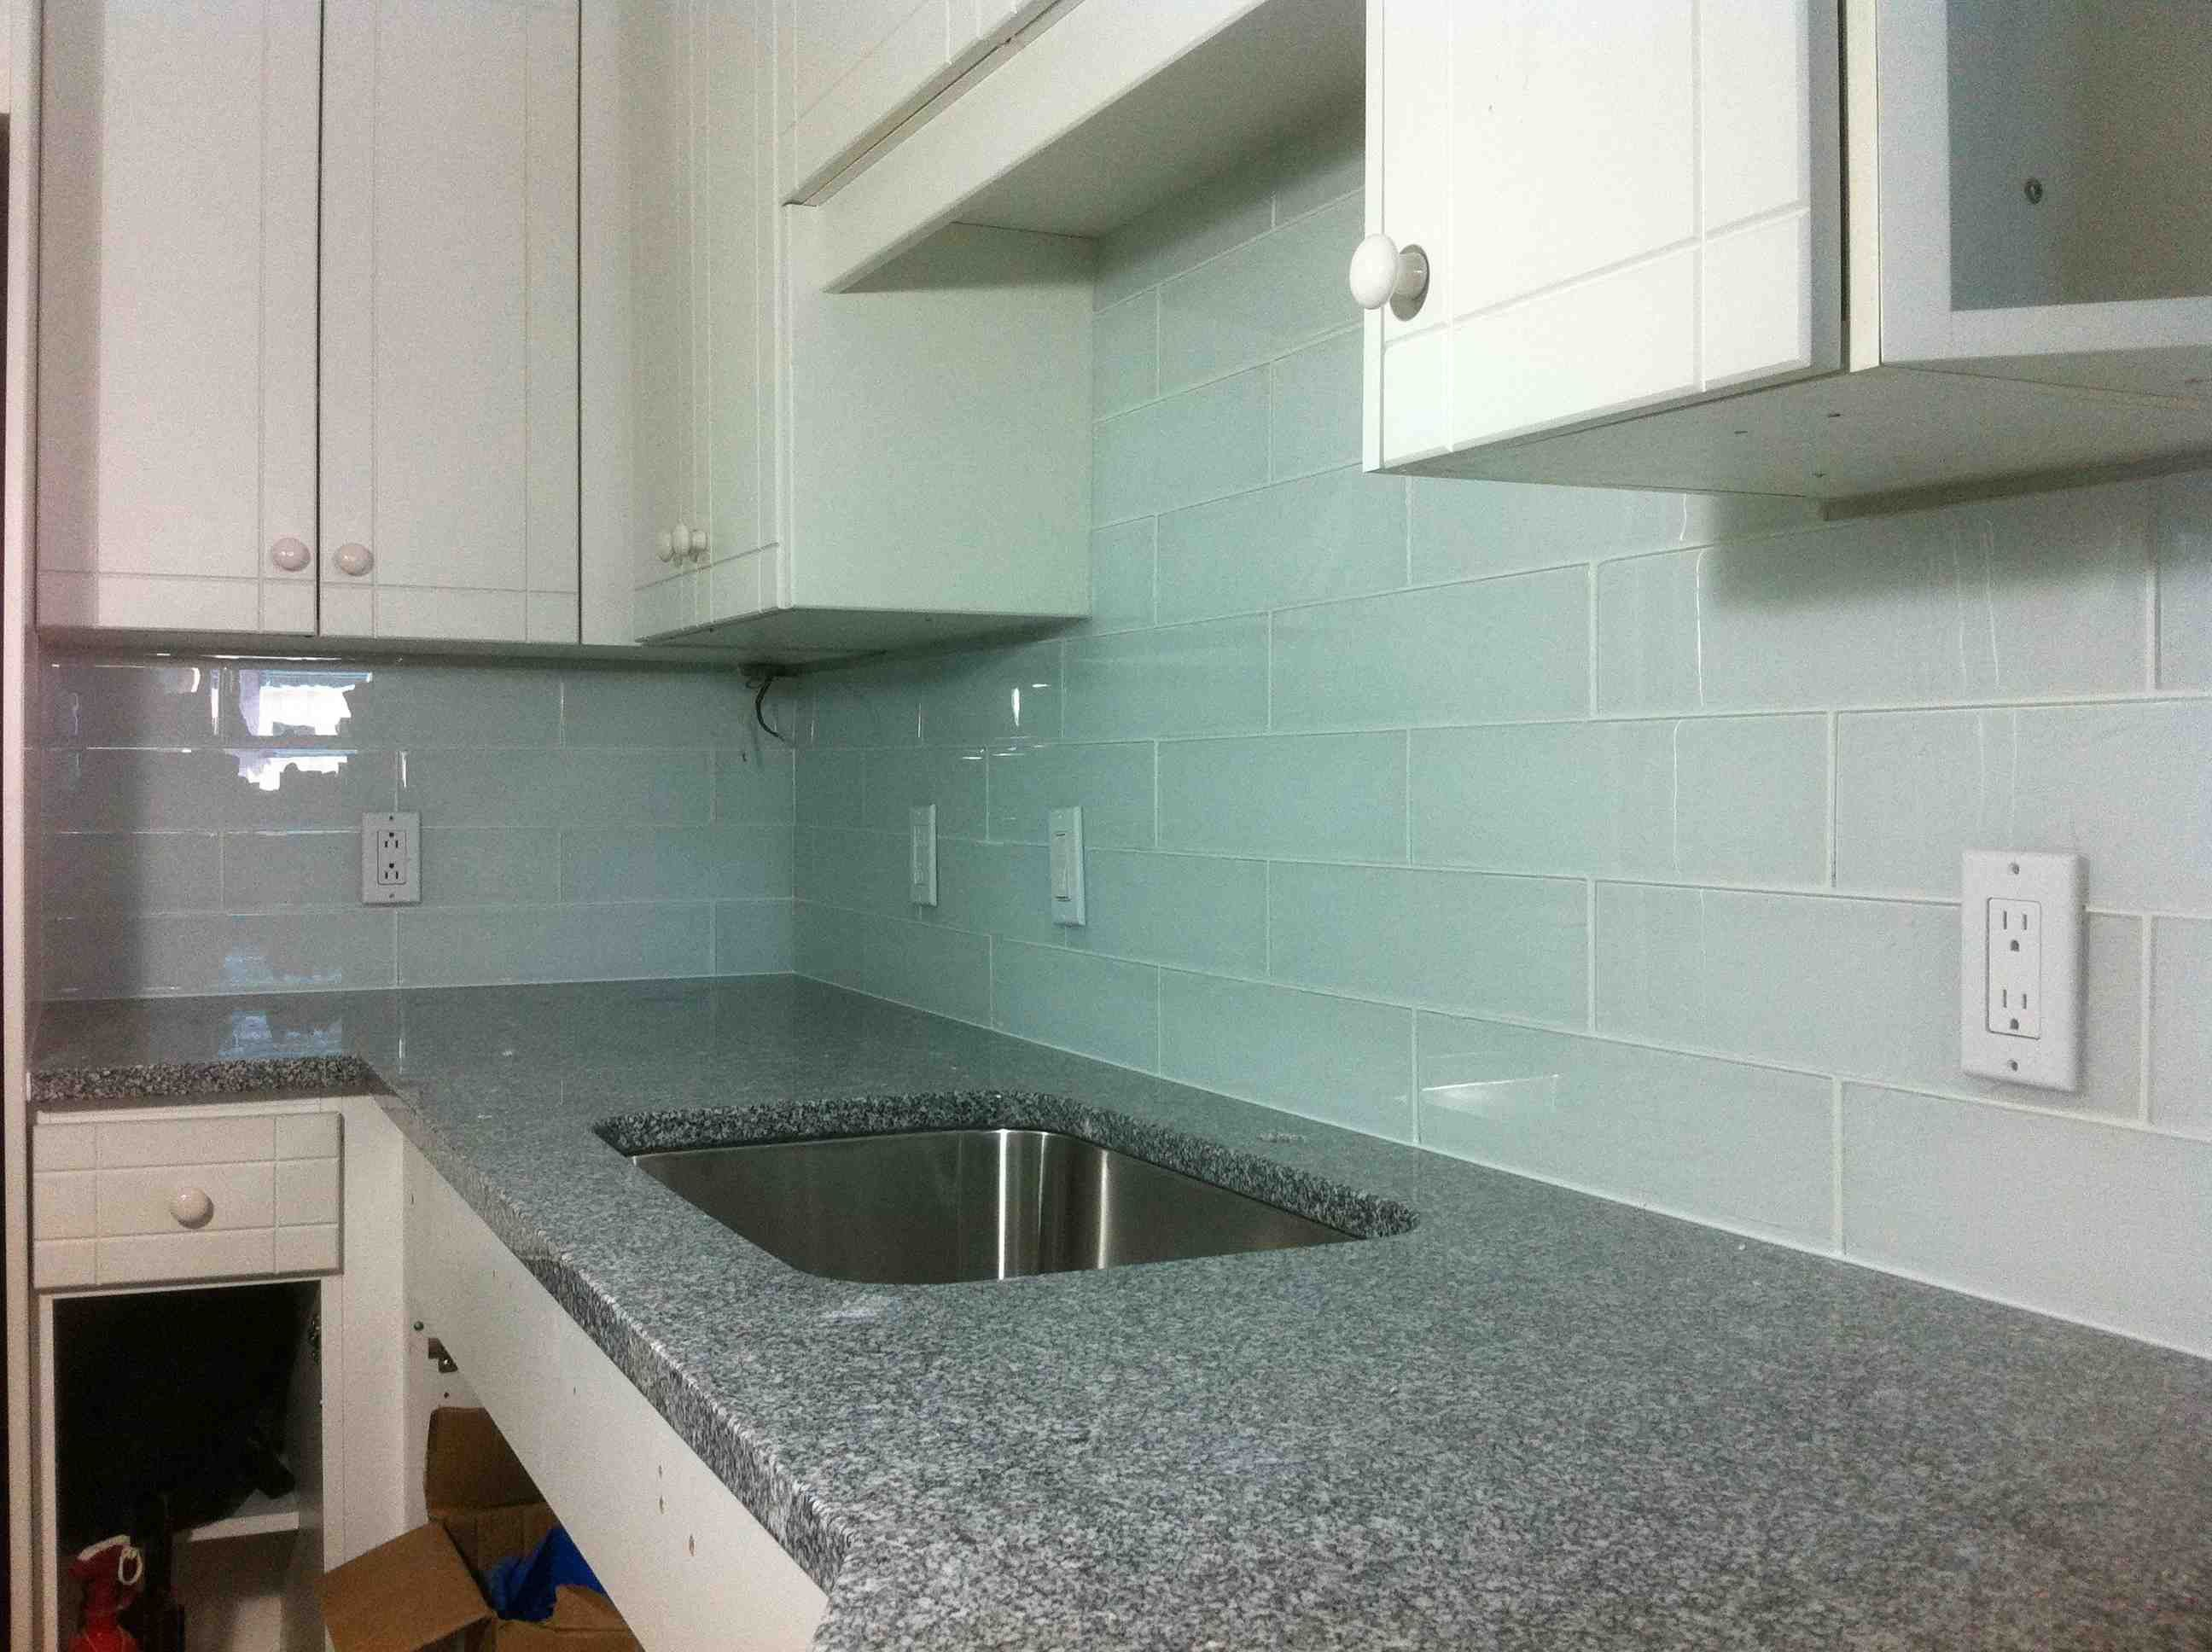 Prefab Granite Modern Backsplash Gray Natural Stone Also Single Backsplash Stainless Steel Sink For Attractive Blue White Ceramic Glass Subway Kitchen Tiles